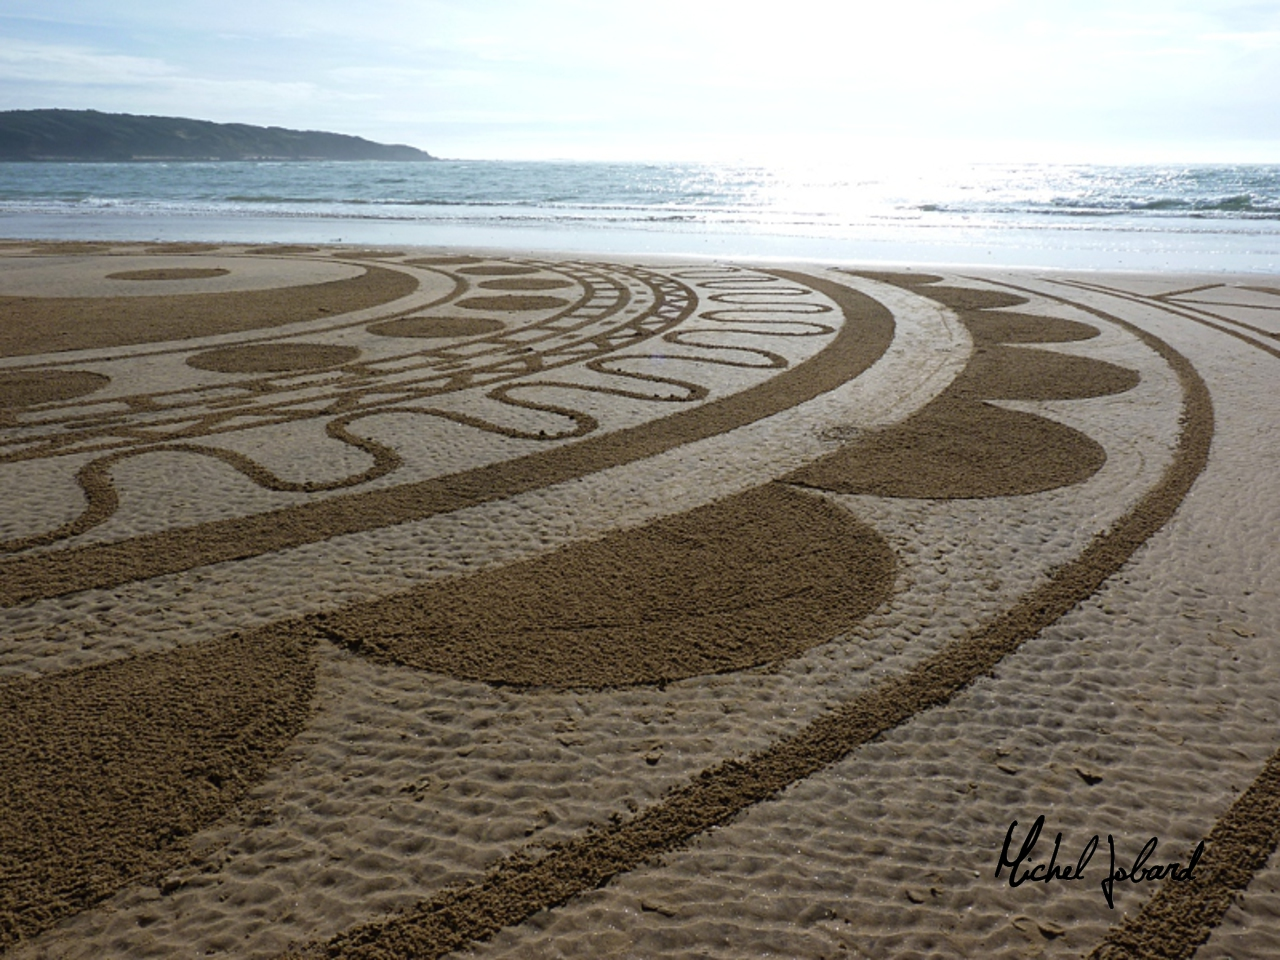 Fresque Beach art Yin et Yang, Michel Jobard